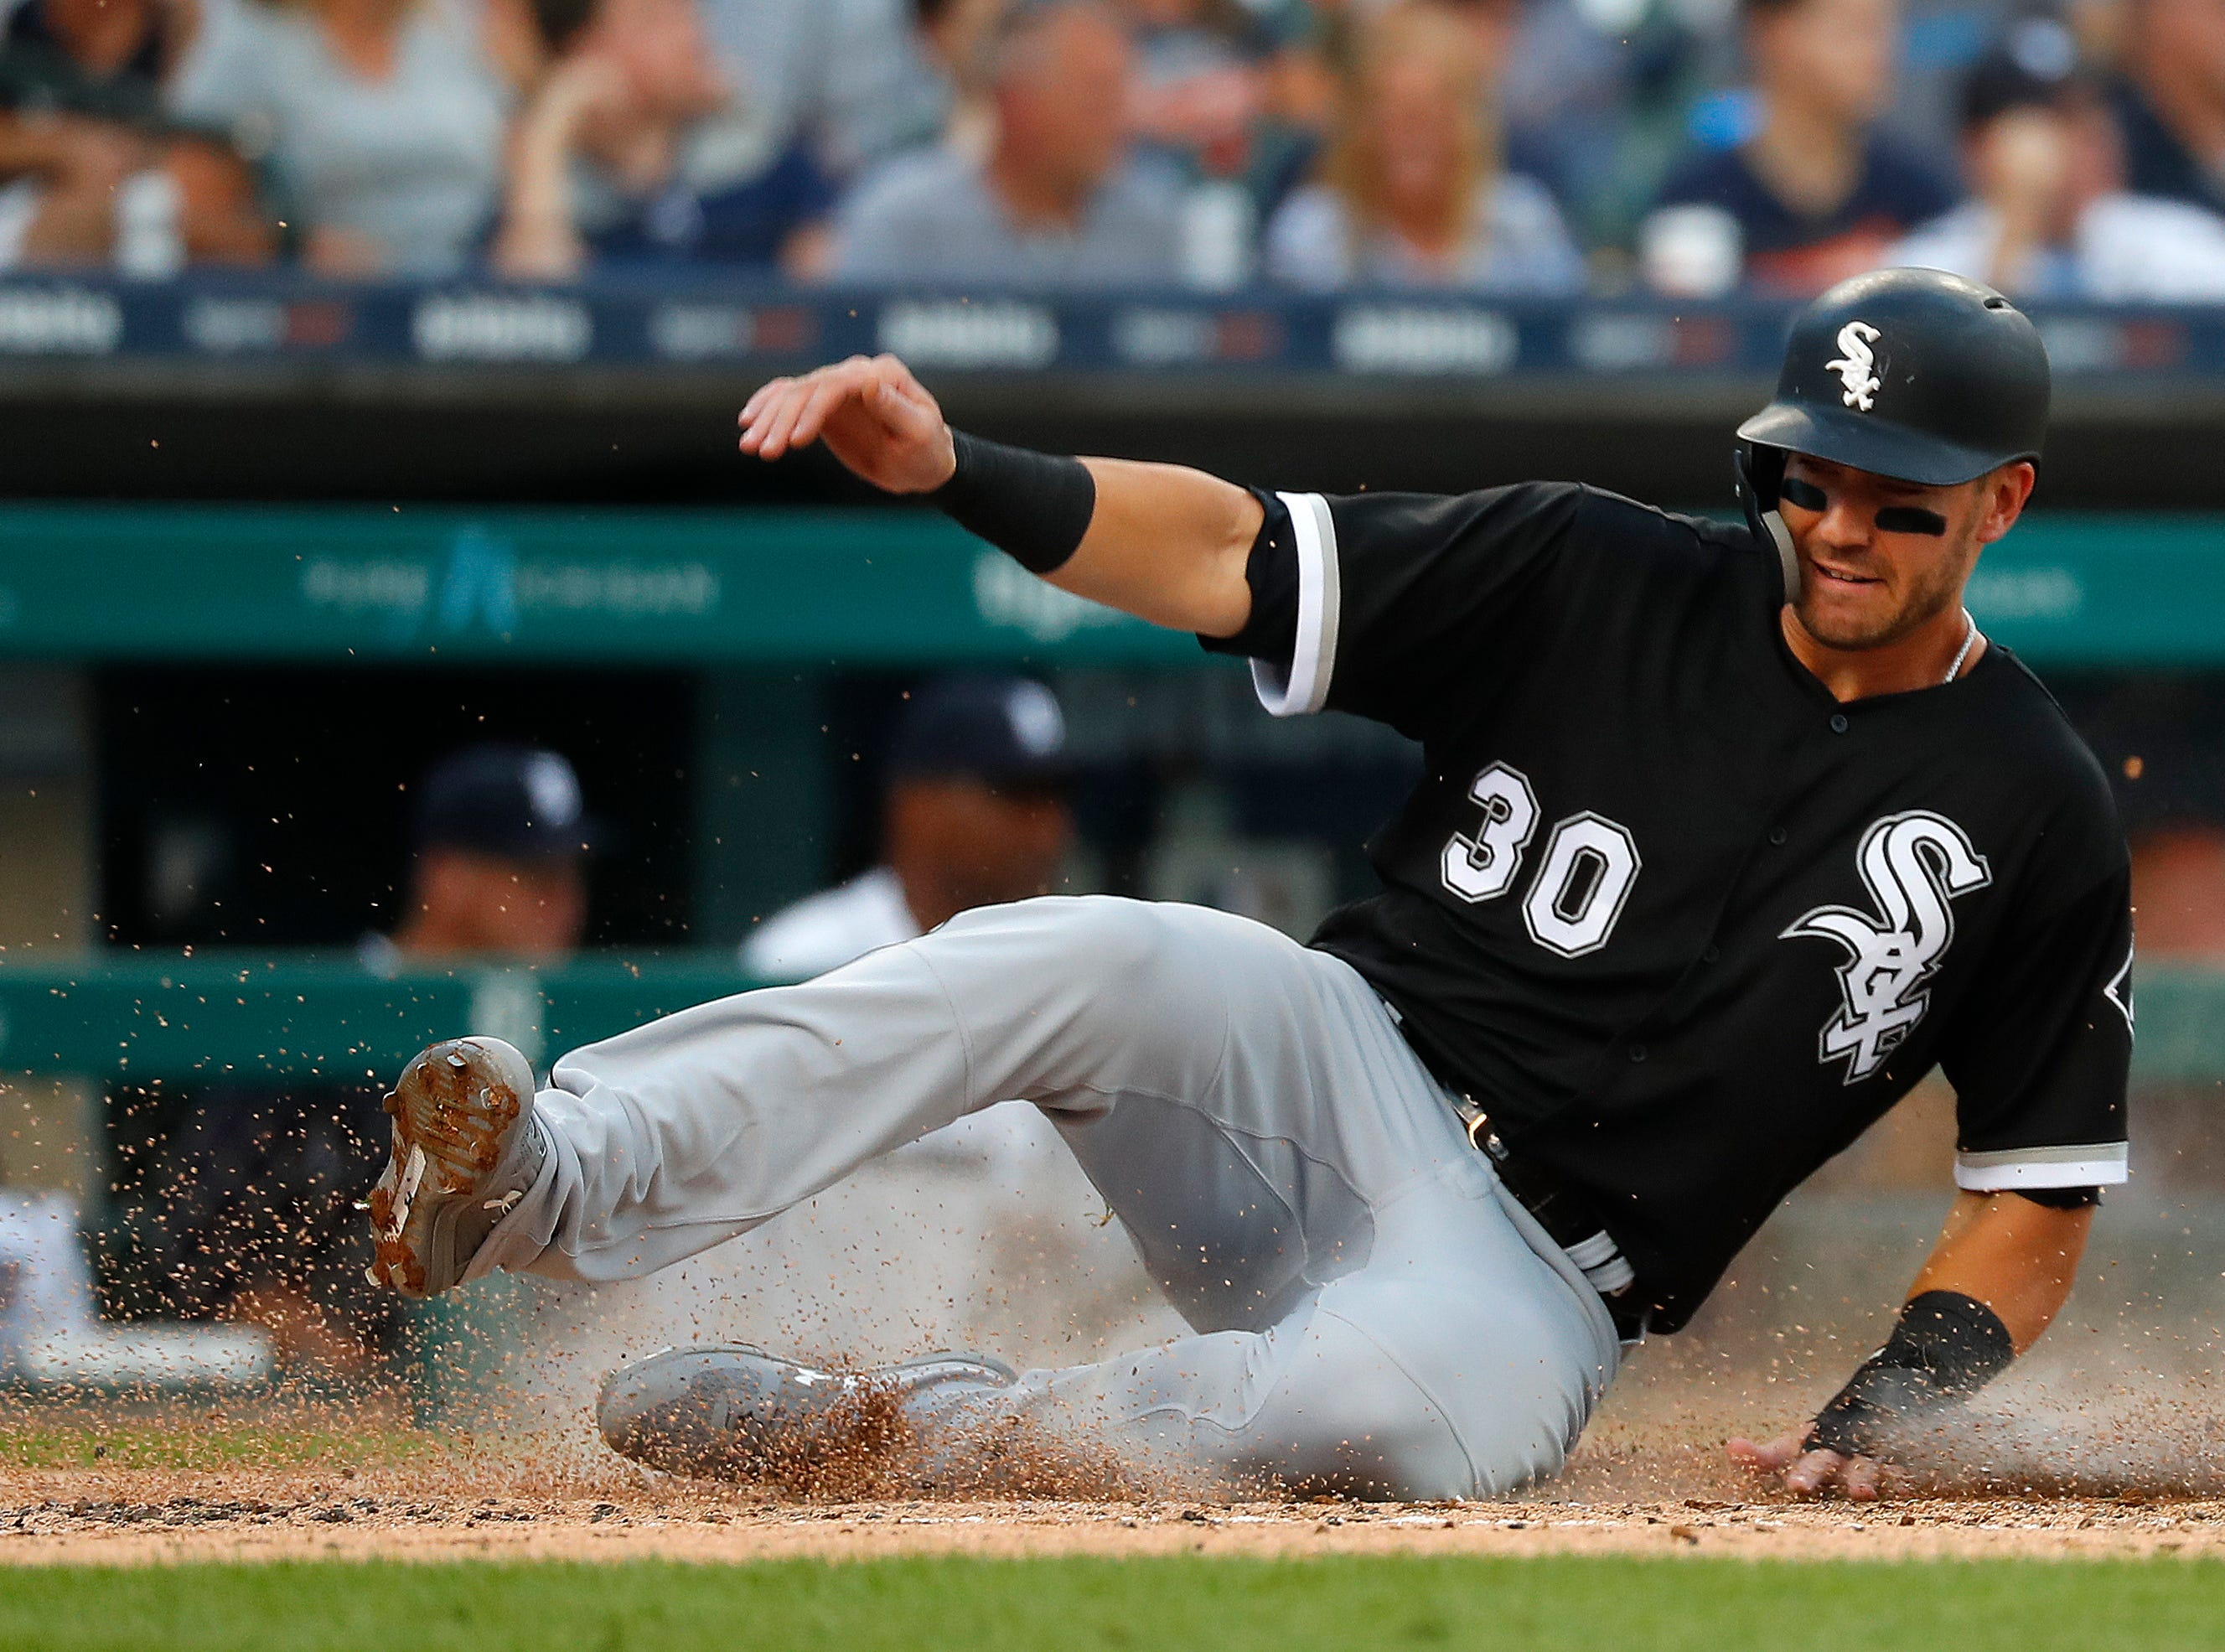 Chicago White Sox's Nicky Delmonico scores in the third inning.